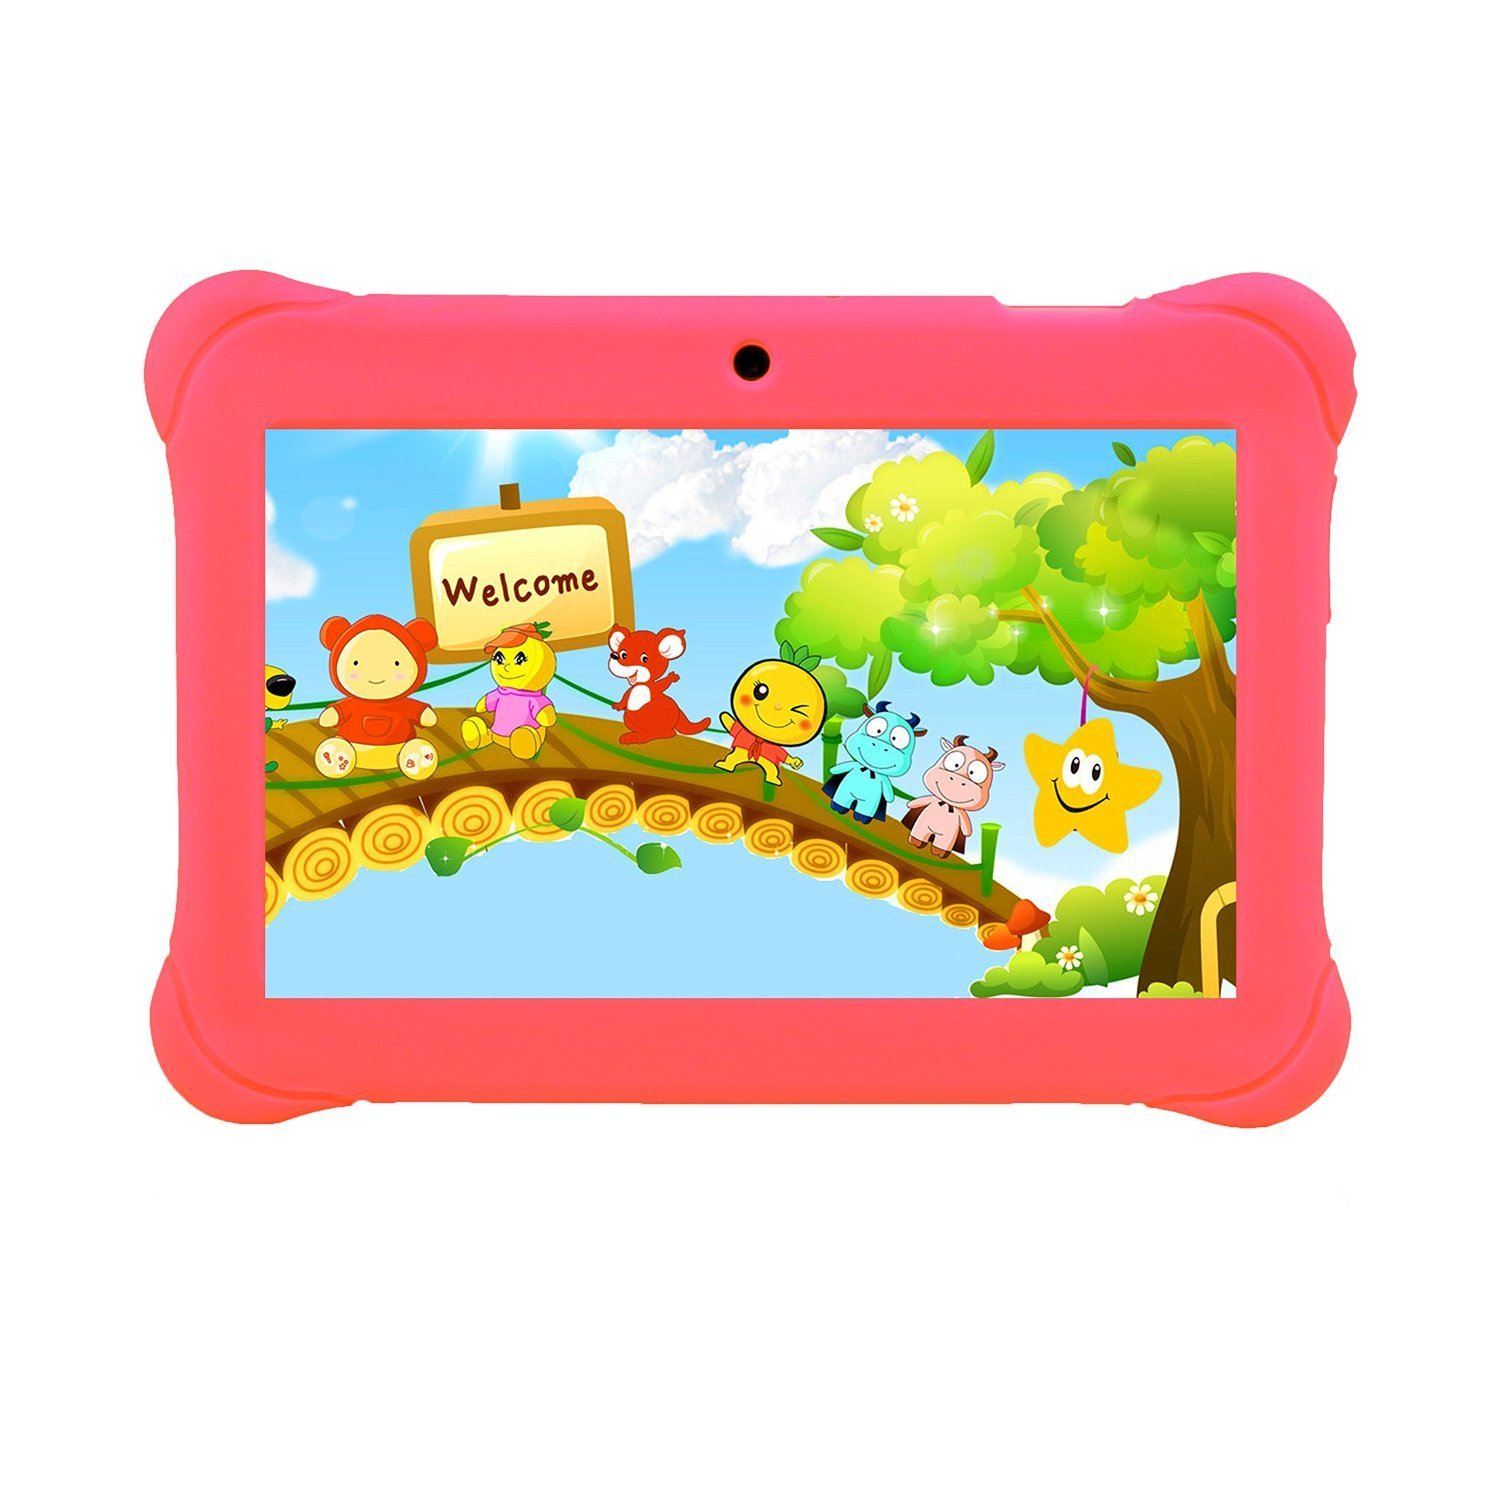 Tagital 7'' T7K Quad Core Android Kids Tablet, with Wifi and Camera and Games, HD Kids Edition with Kid Mode Pre-Installed (Pink)